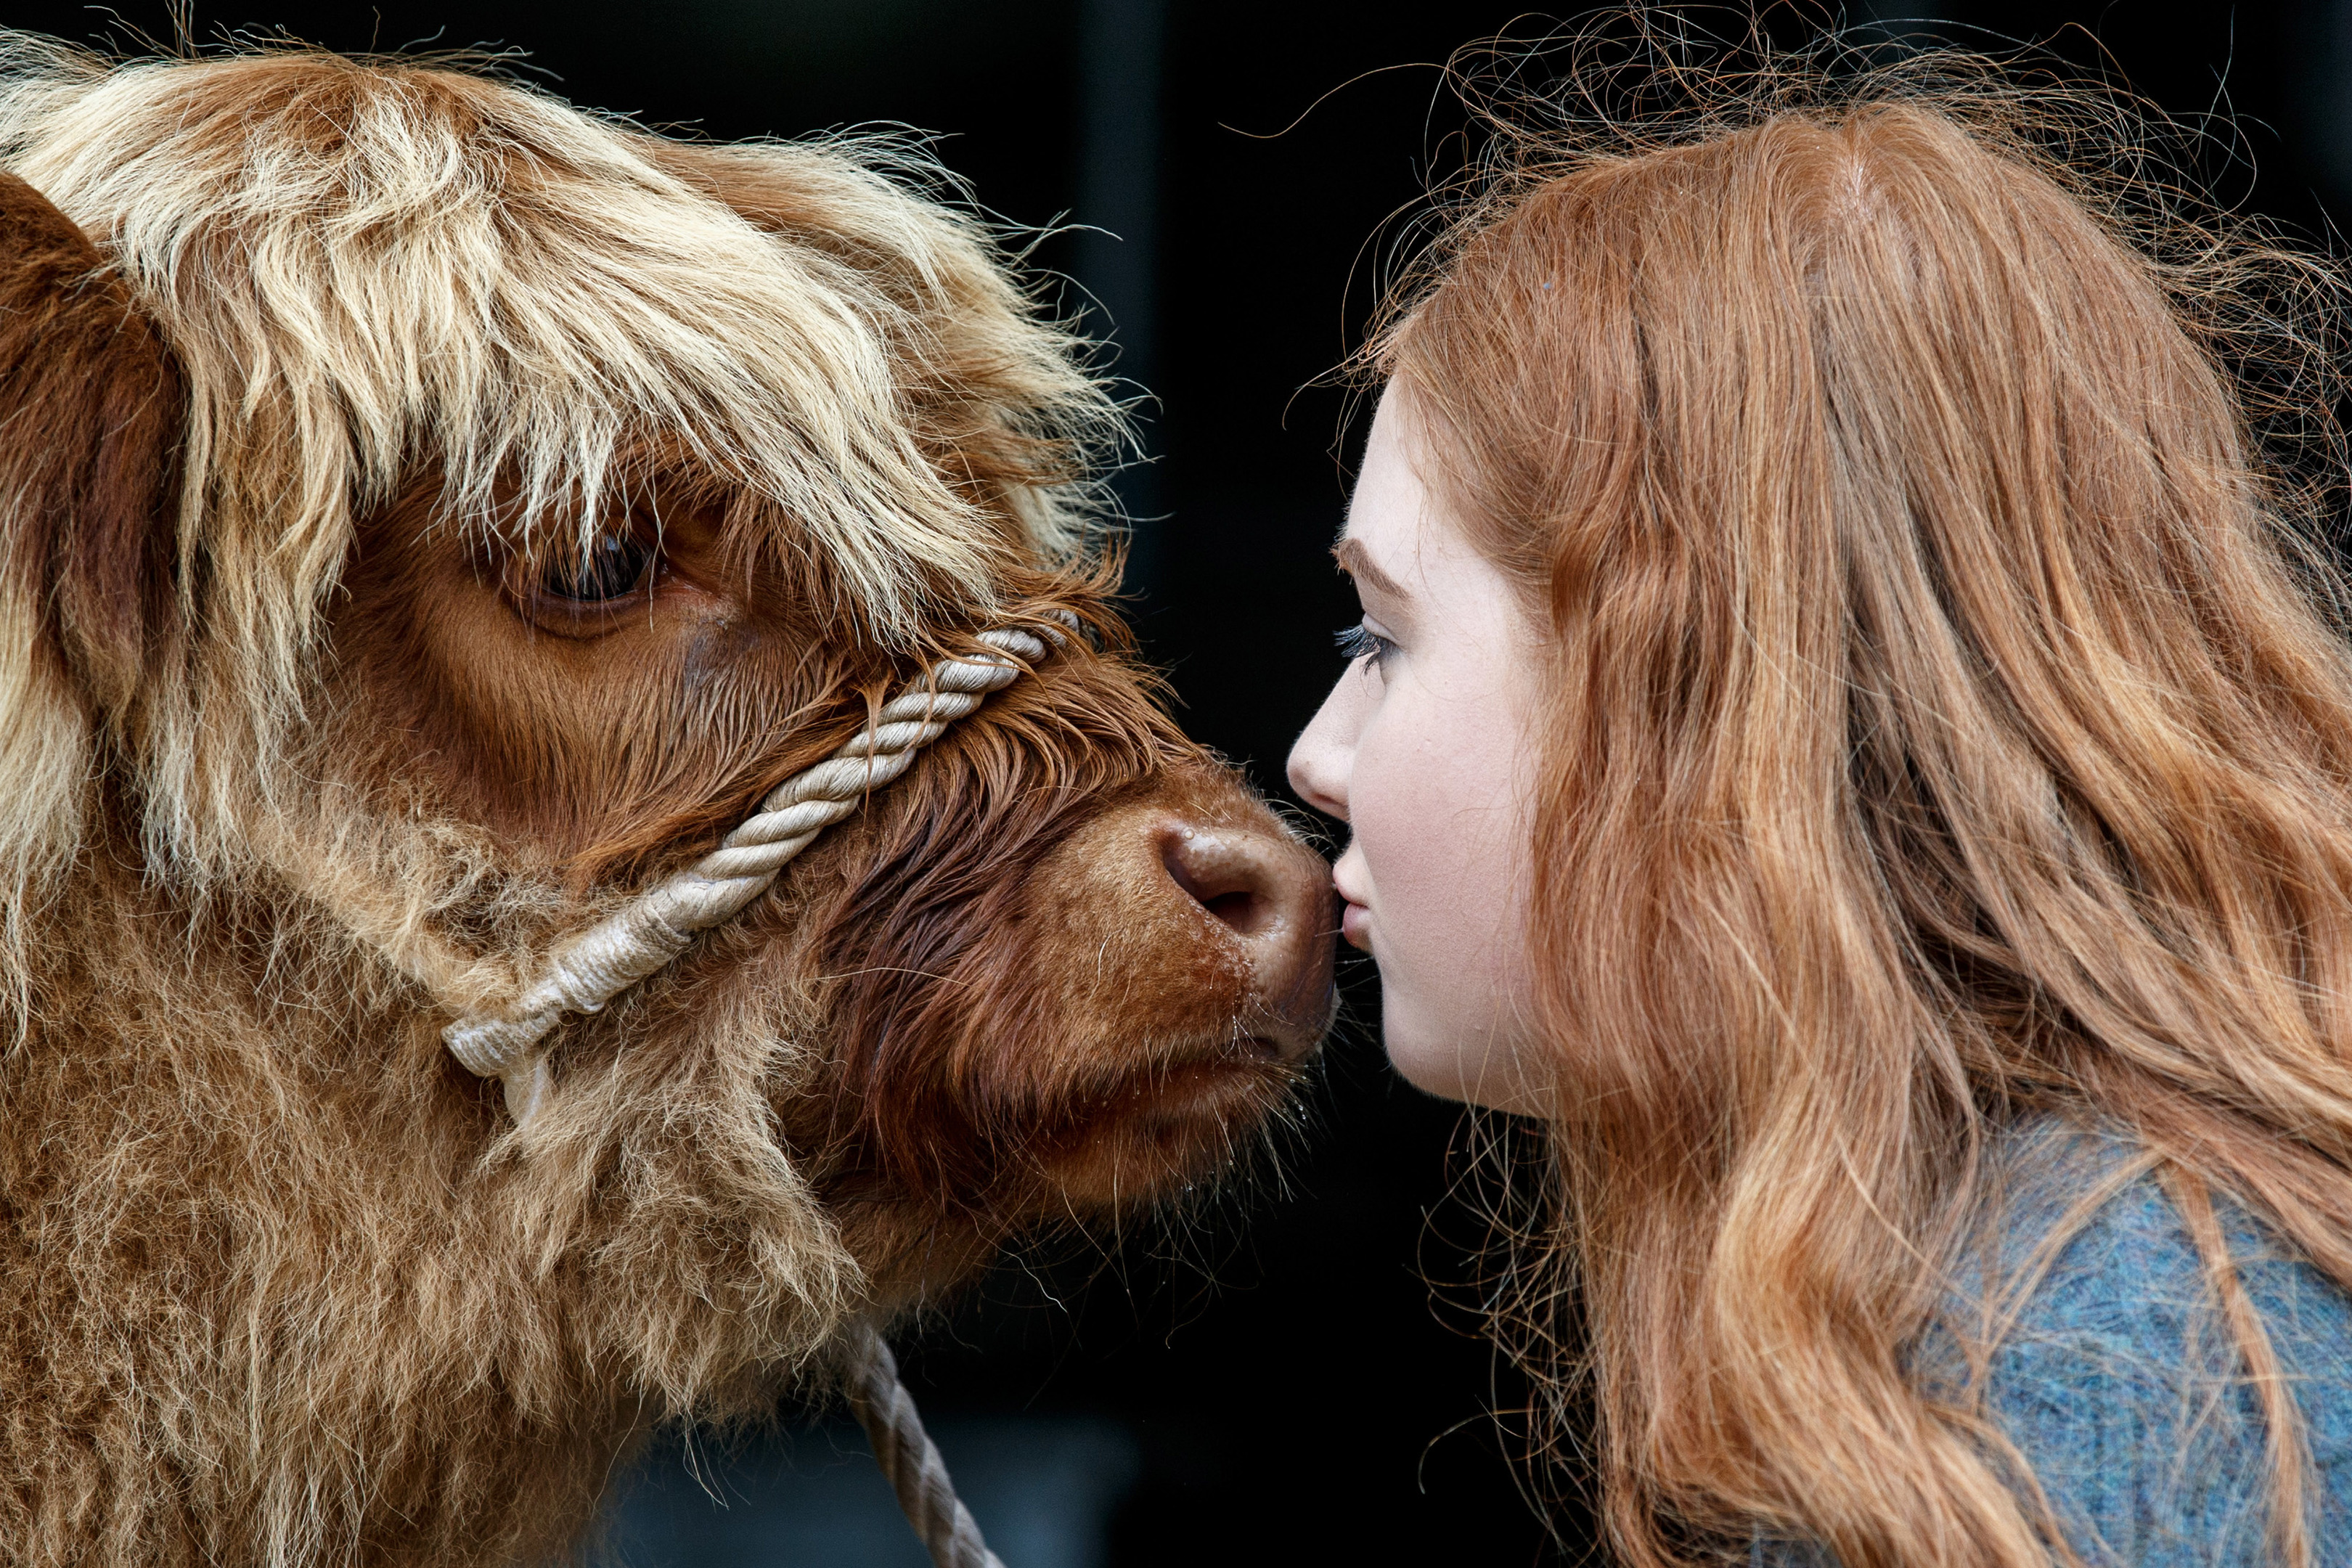 Laura Hunter (18) from Barnhill Farm, Shotts with a Highland calf before the 177th Royal Highland Show.